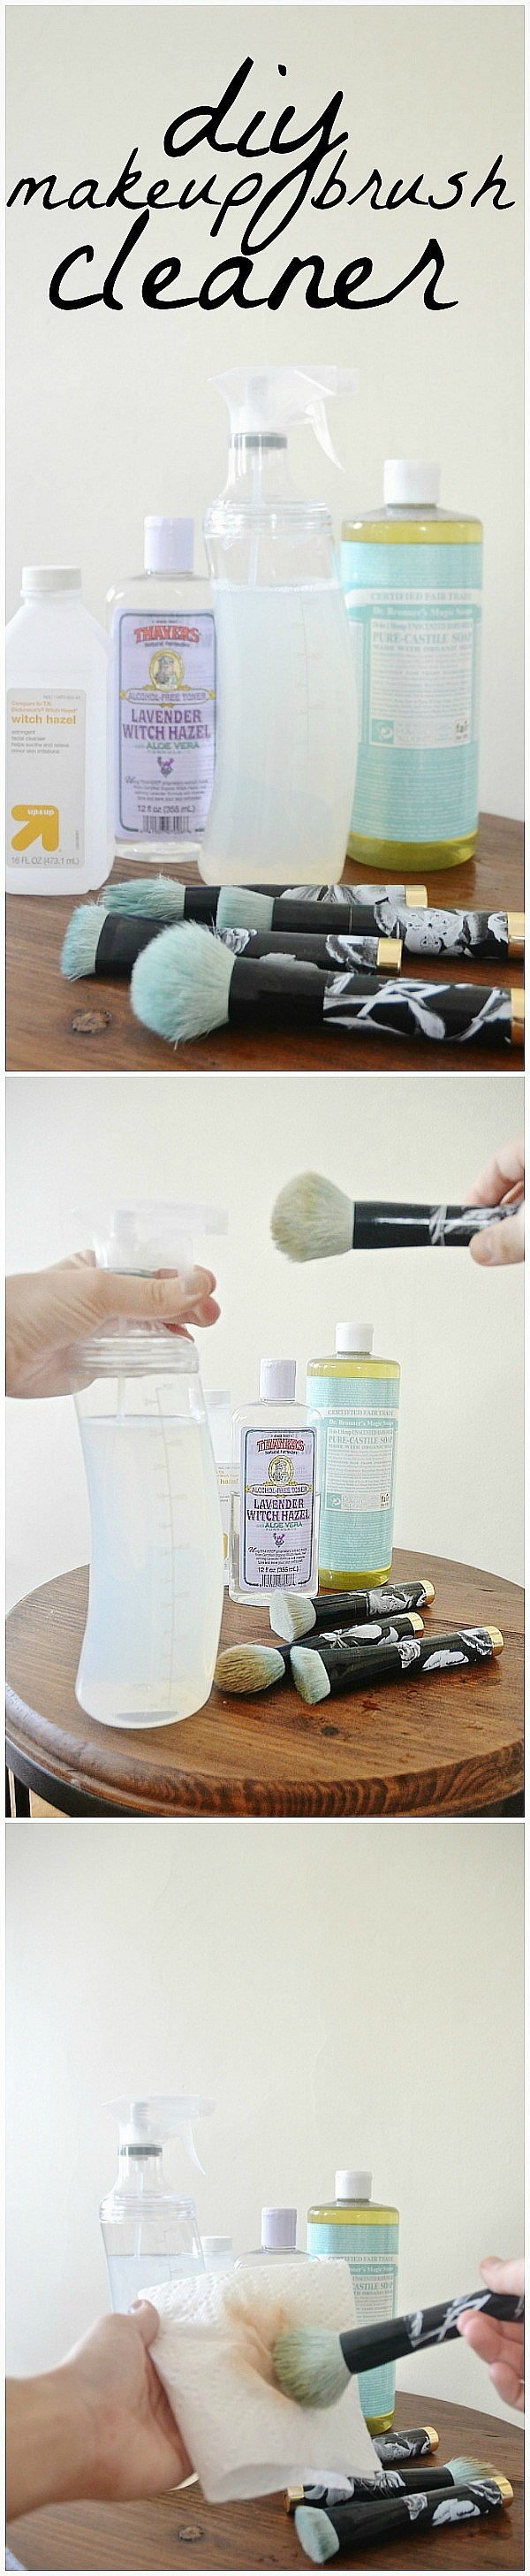 DIY Makeup Brush Cleaner With Witch Hazel And Baby Soap.